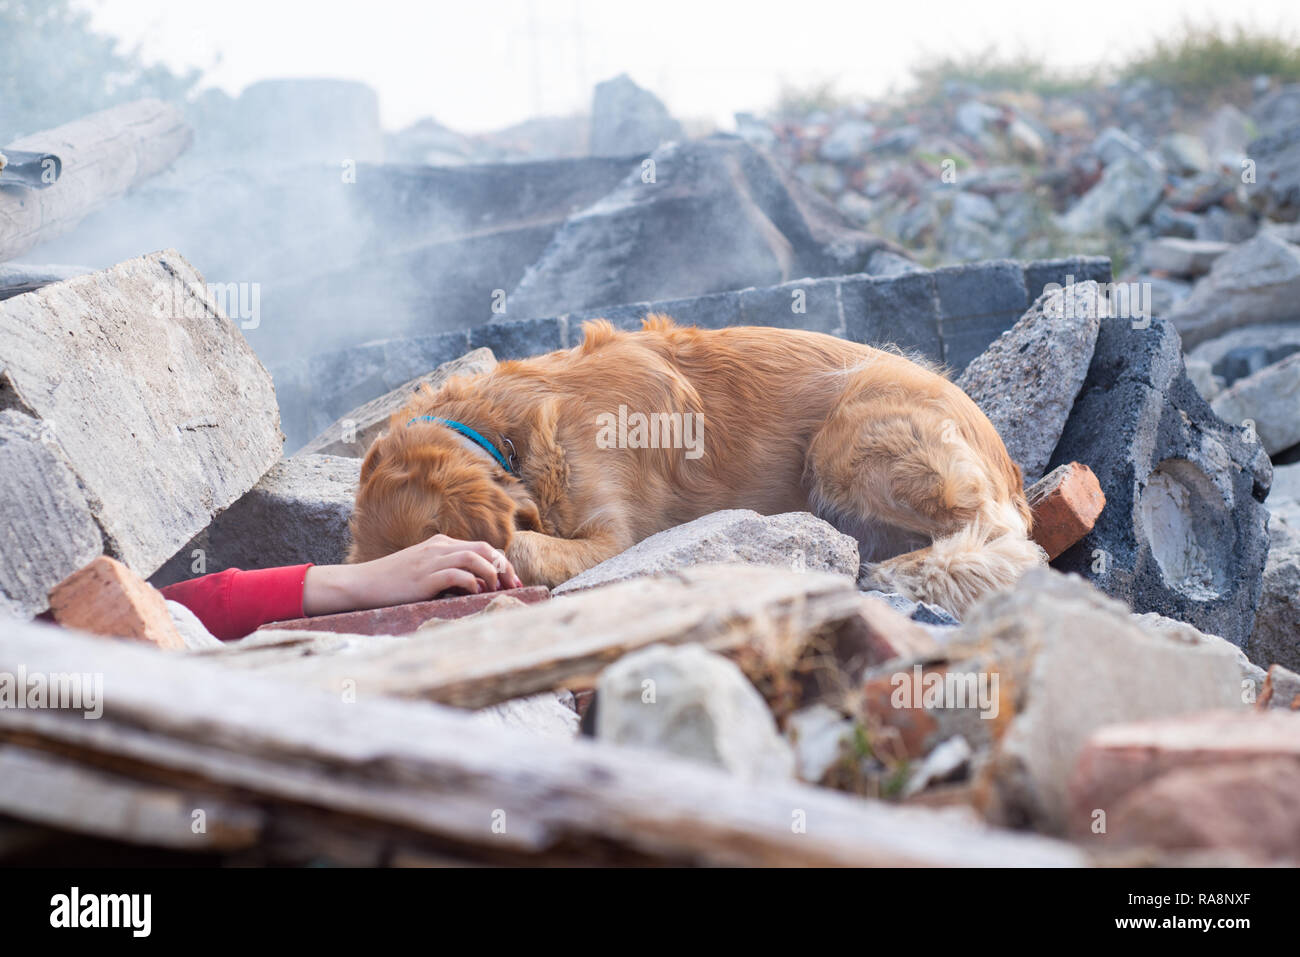 Dog looking for injured people in ruins after earthquake. Stock Photo